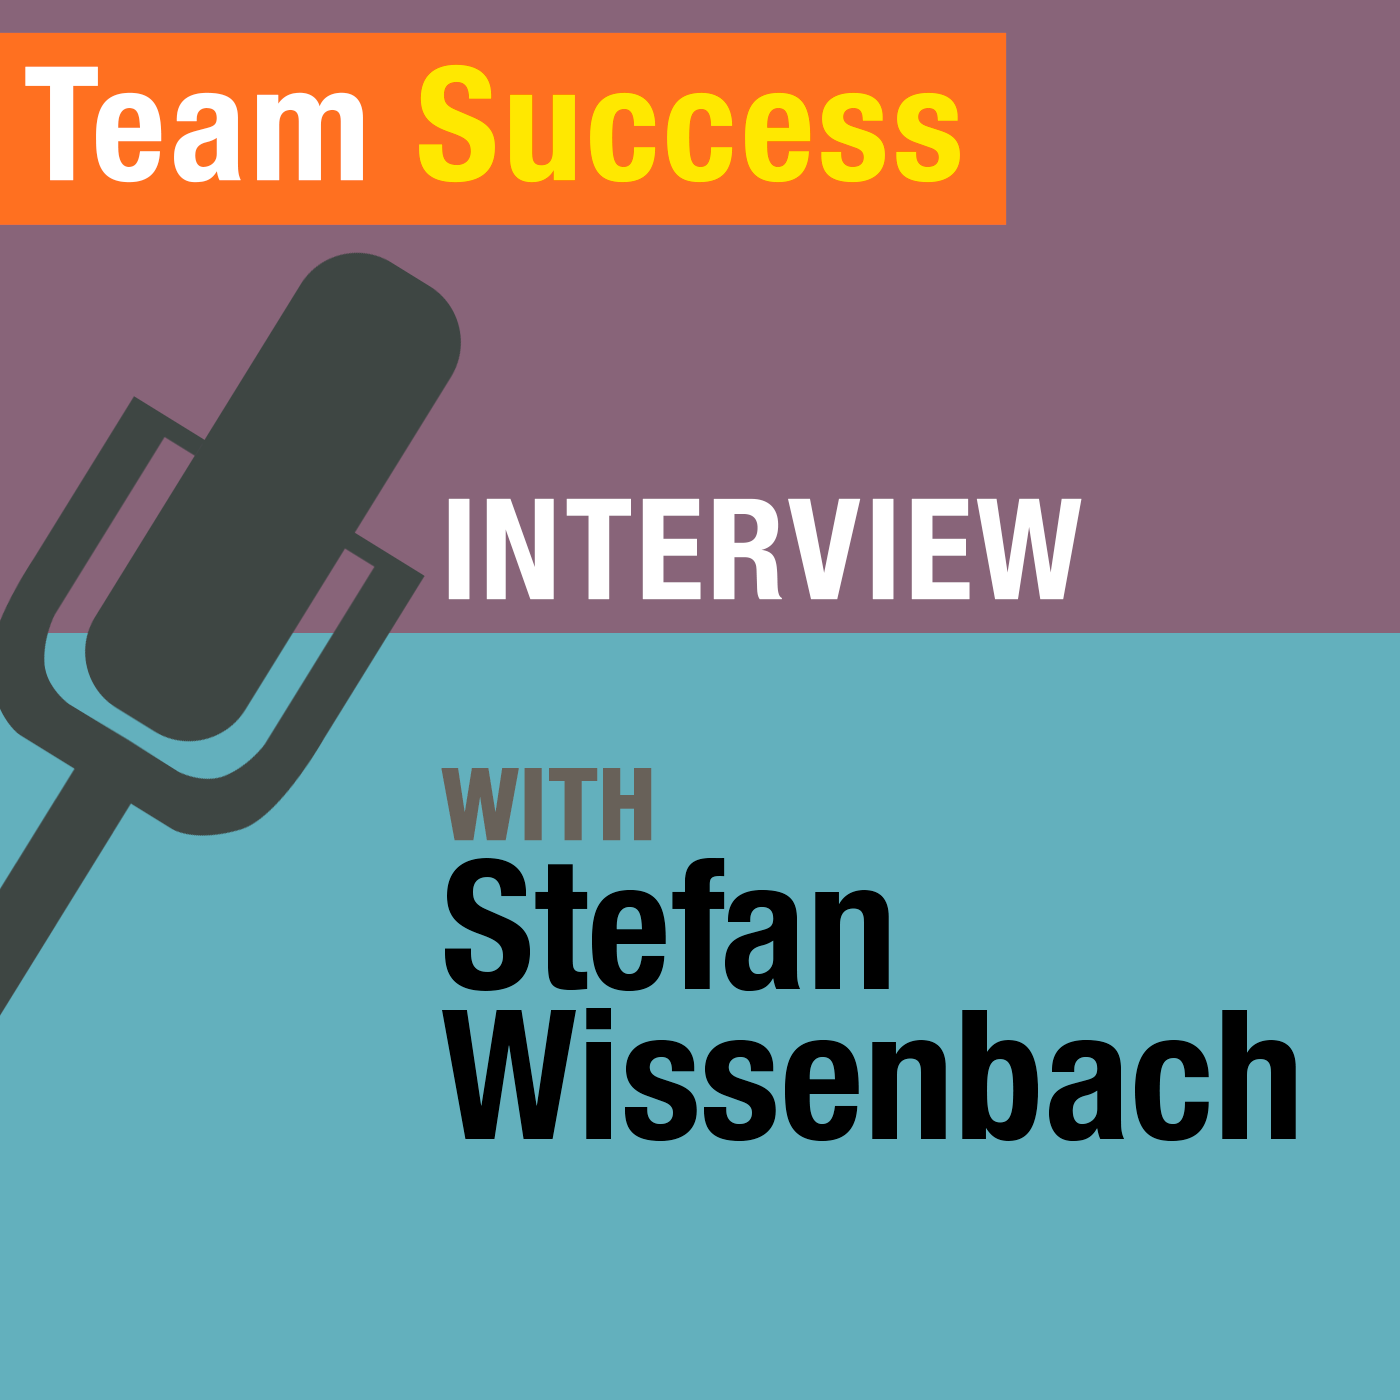 An Interview With Stefan Wissenbach